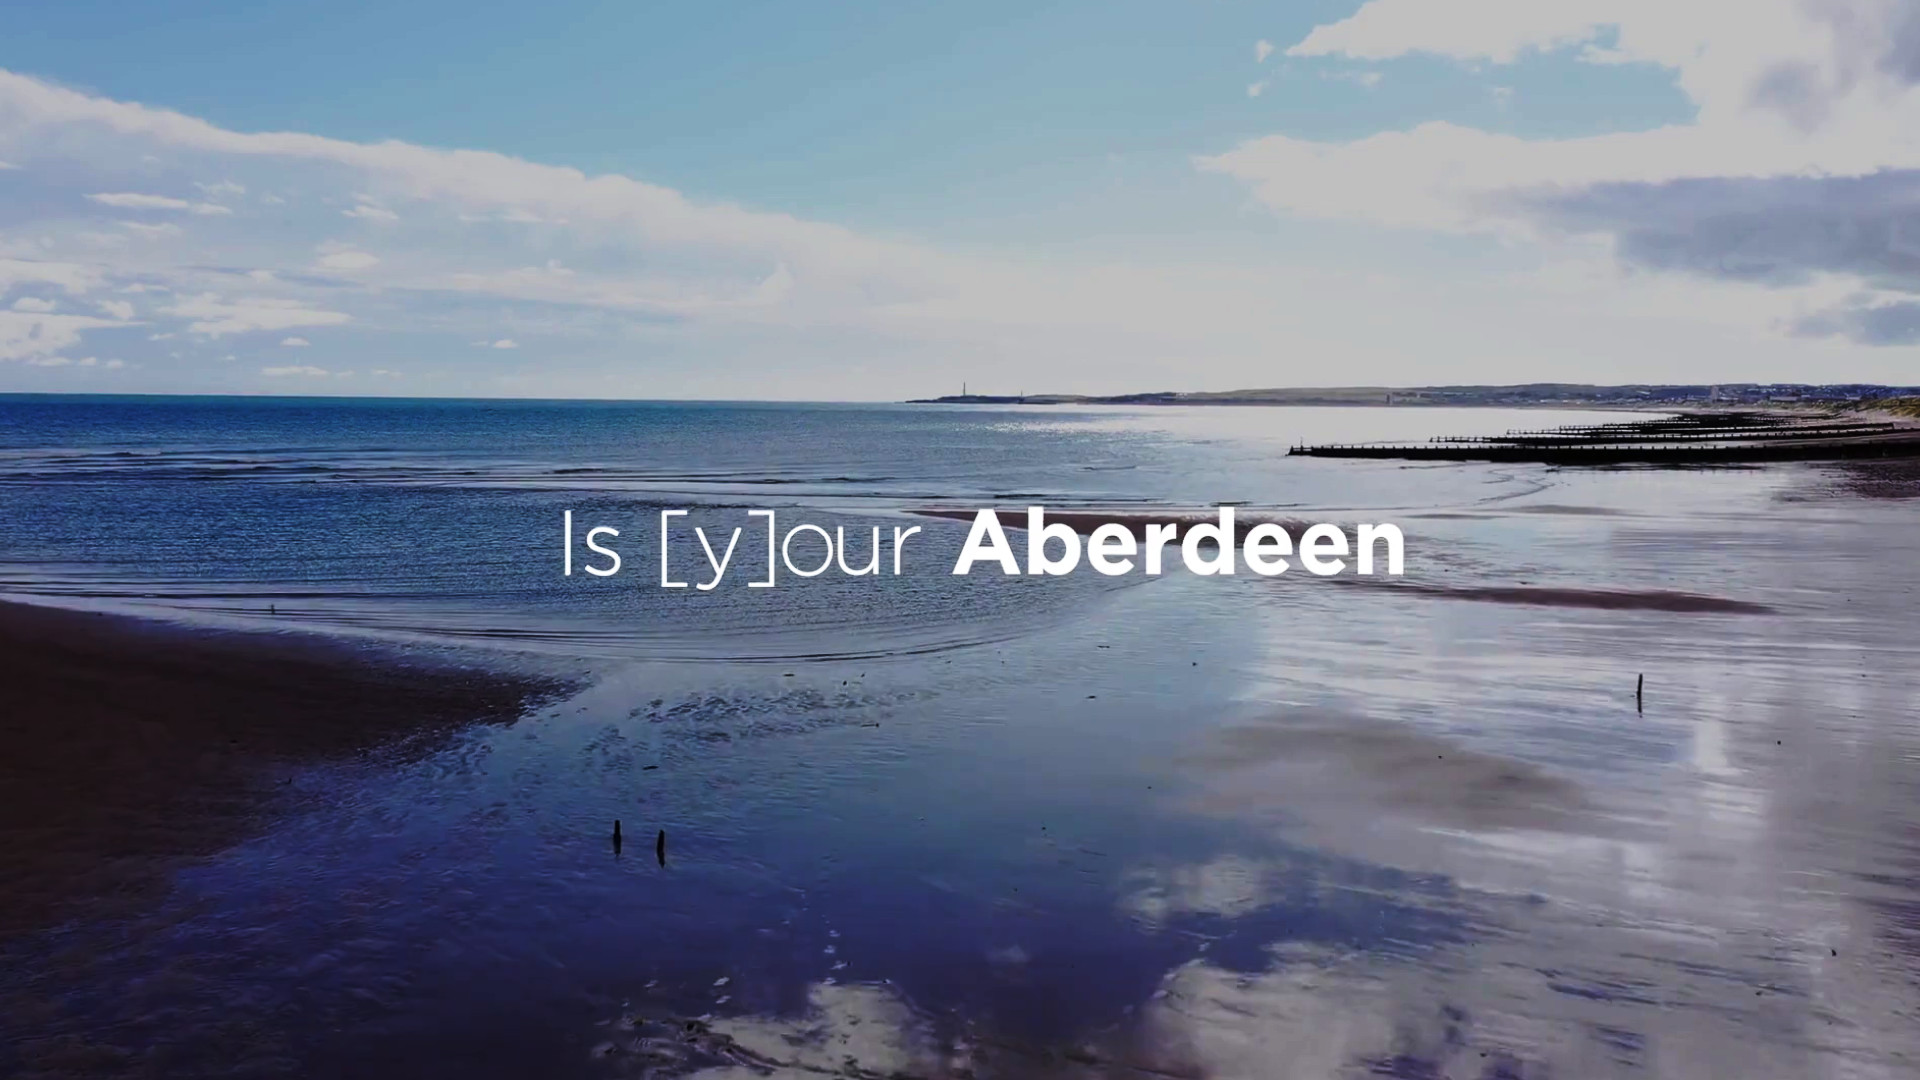 Our Aberdeen is Your Aberdeen Campaign